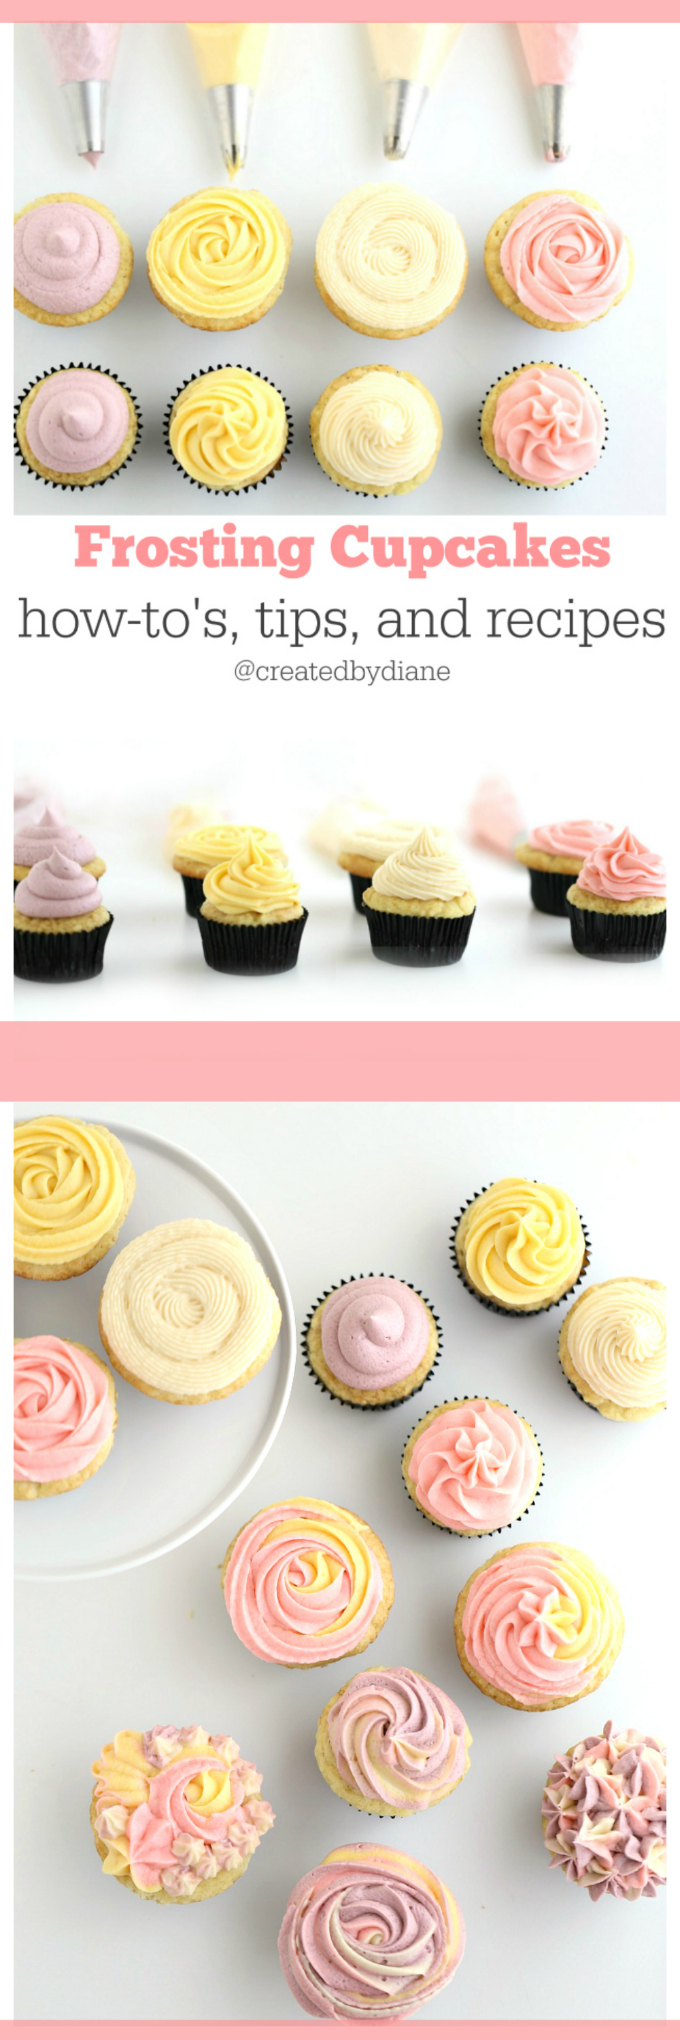 Frosting Cupcakes how-to's, tips, and recipes from @createdbydiane www.createdby-diane.com